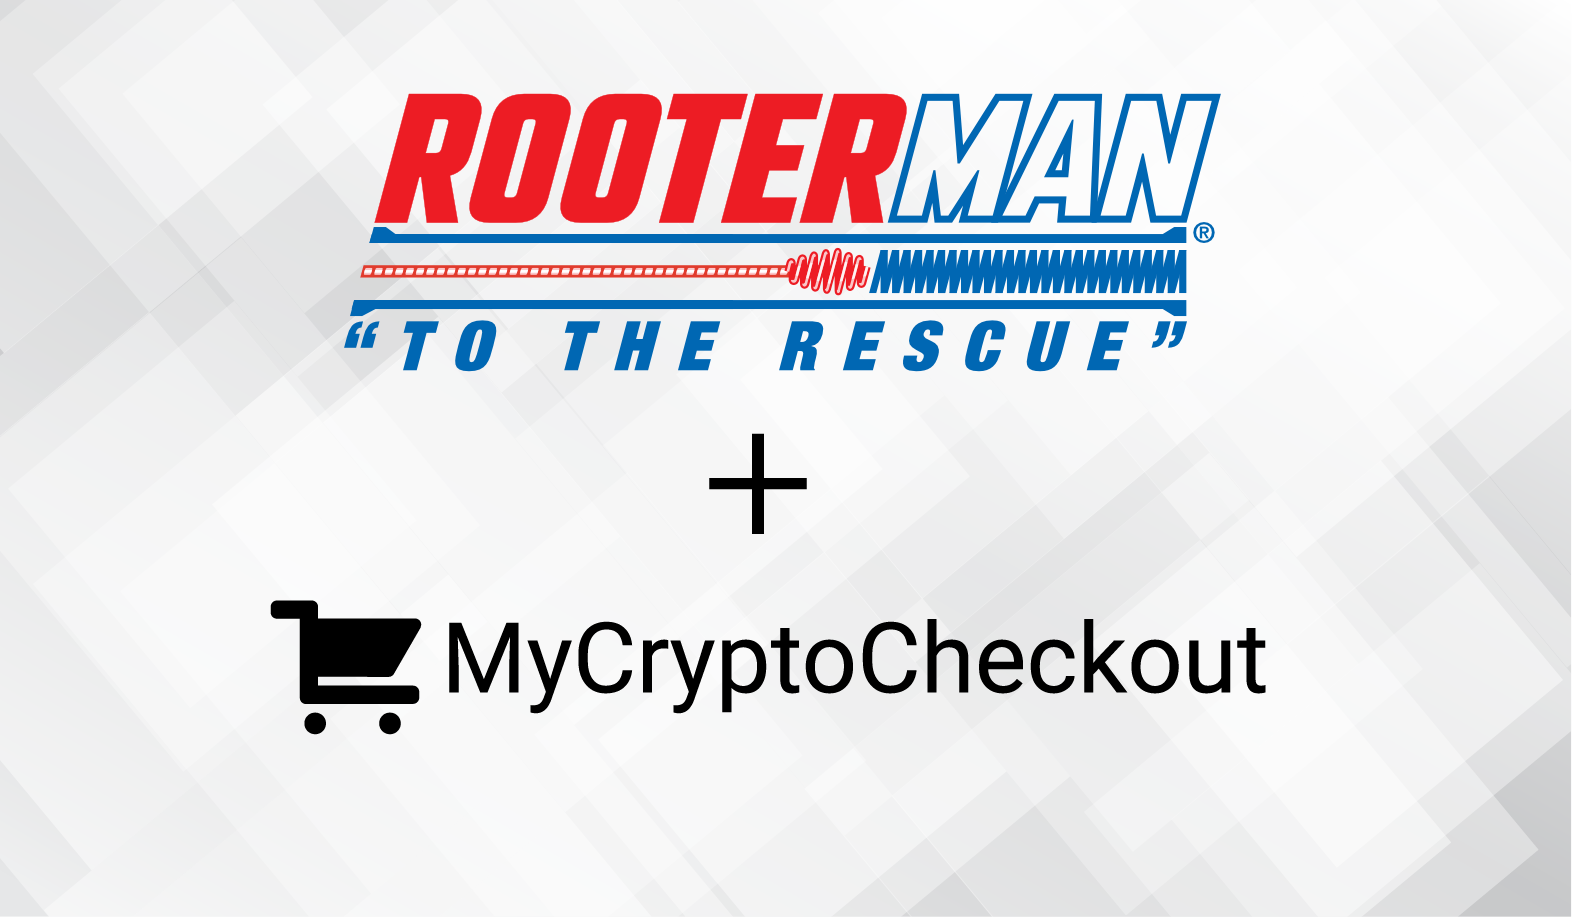 Rooter-Man and MyCryptoCheckout